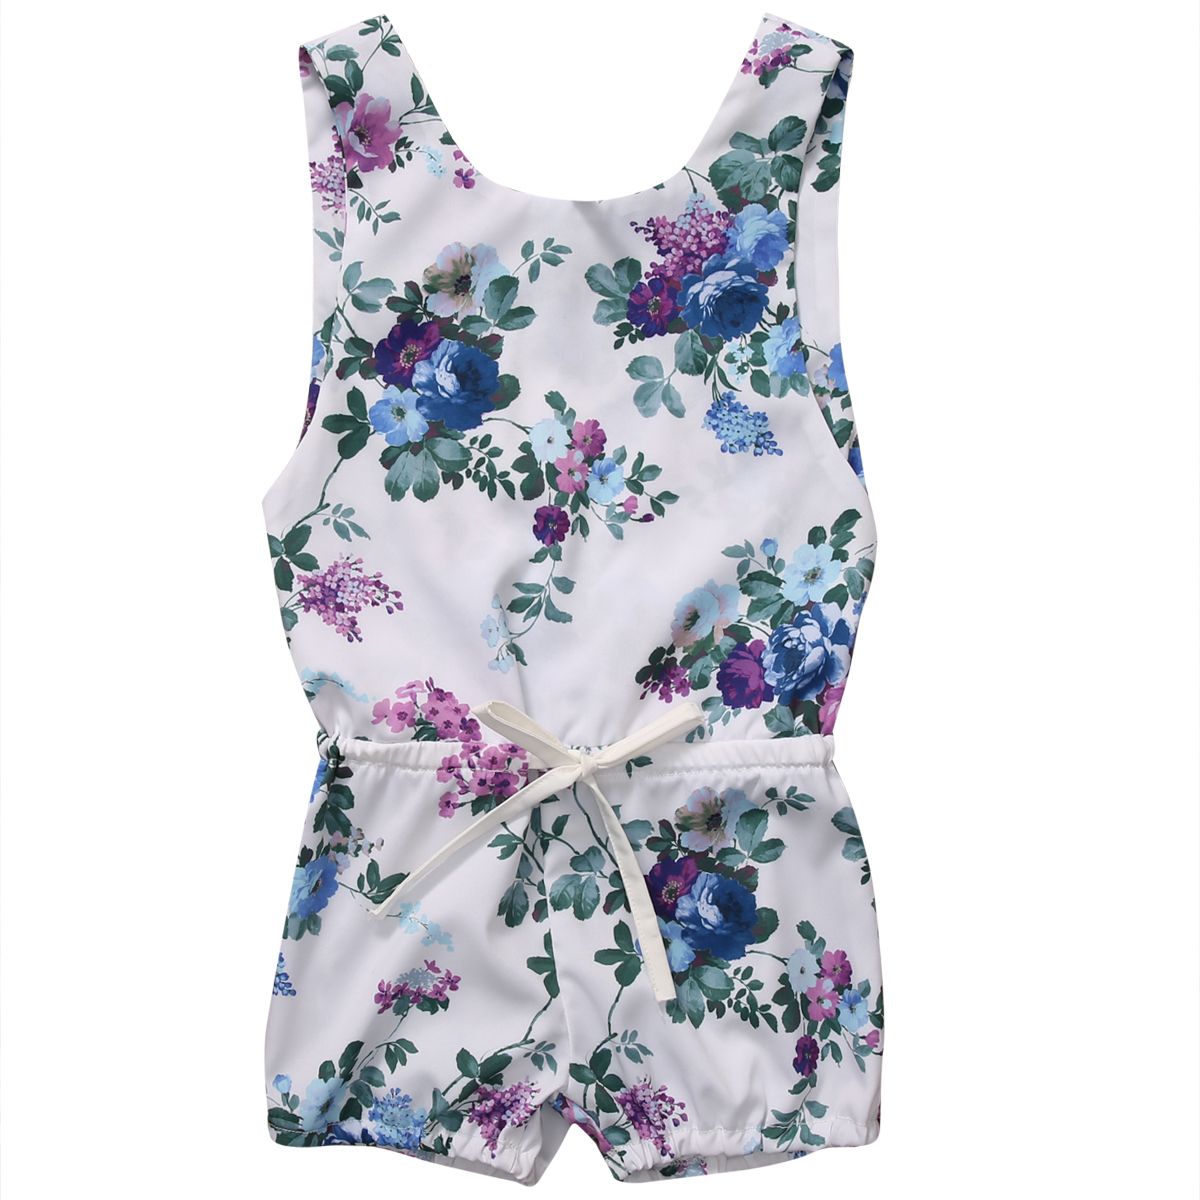 Little Girls Summer Floral Backless Rompers Newborn Toddler Baby Girls Flower Jumper Romper Jumpsuit One-pieces Clothes 0-4Y